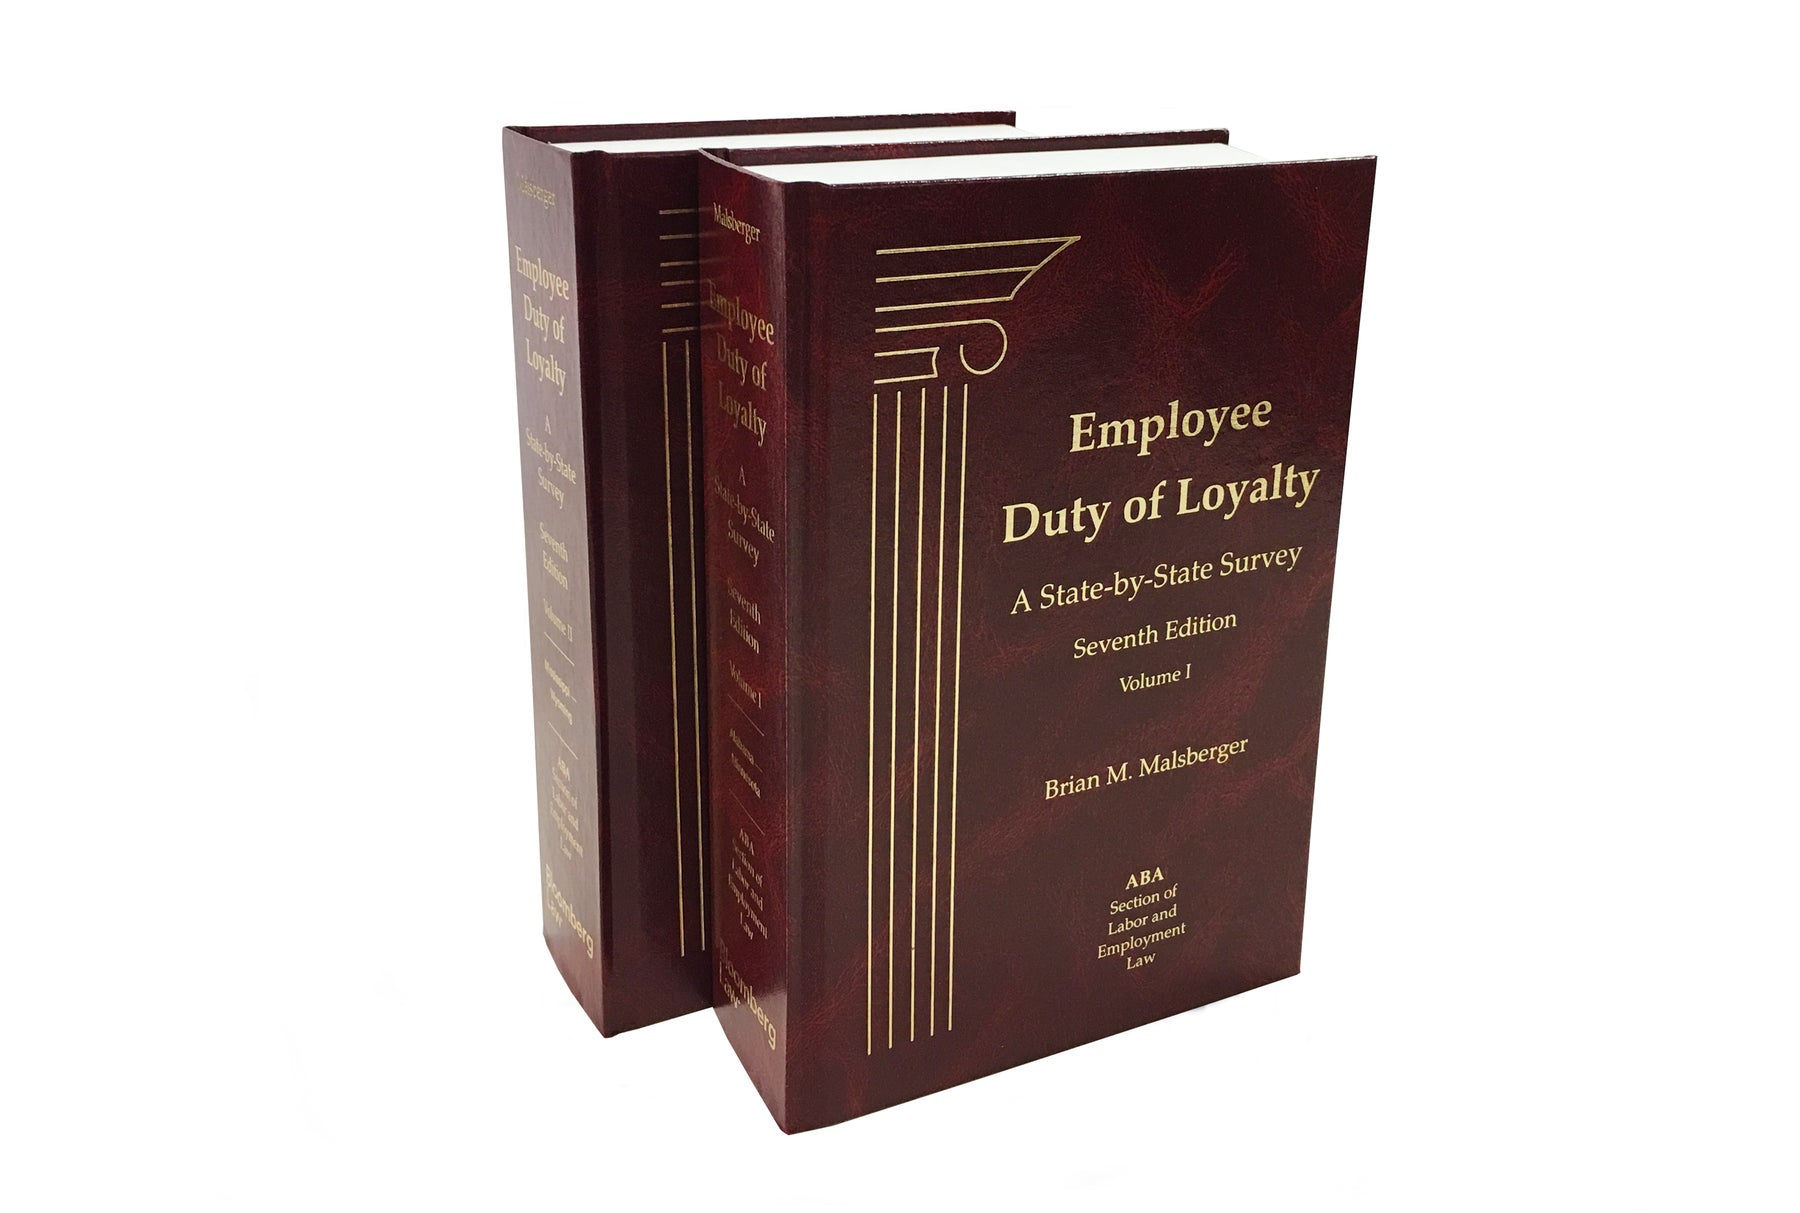 Employee Duty of Loyalty: A State-by-State Survey, Seventh Edition